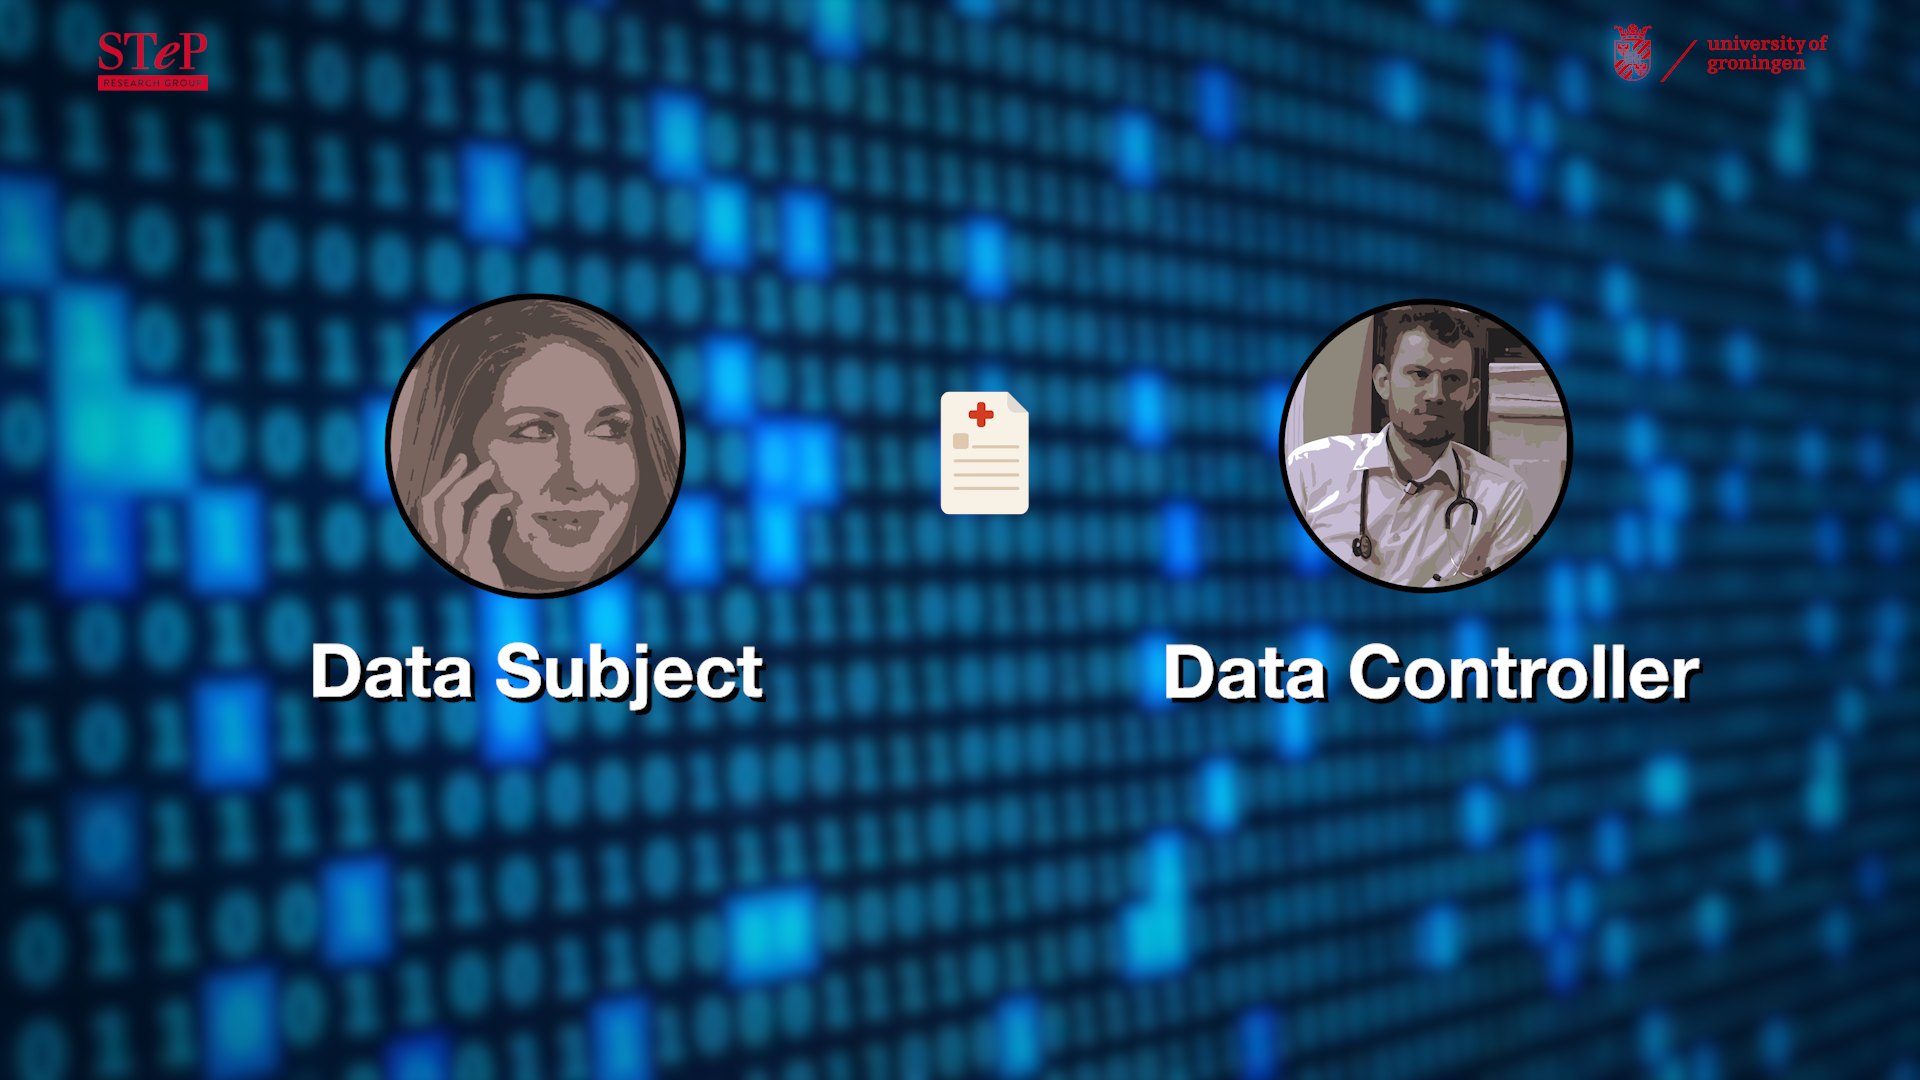 Data subject and data controller